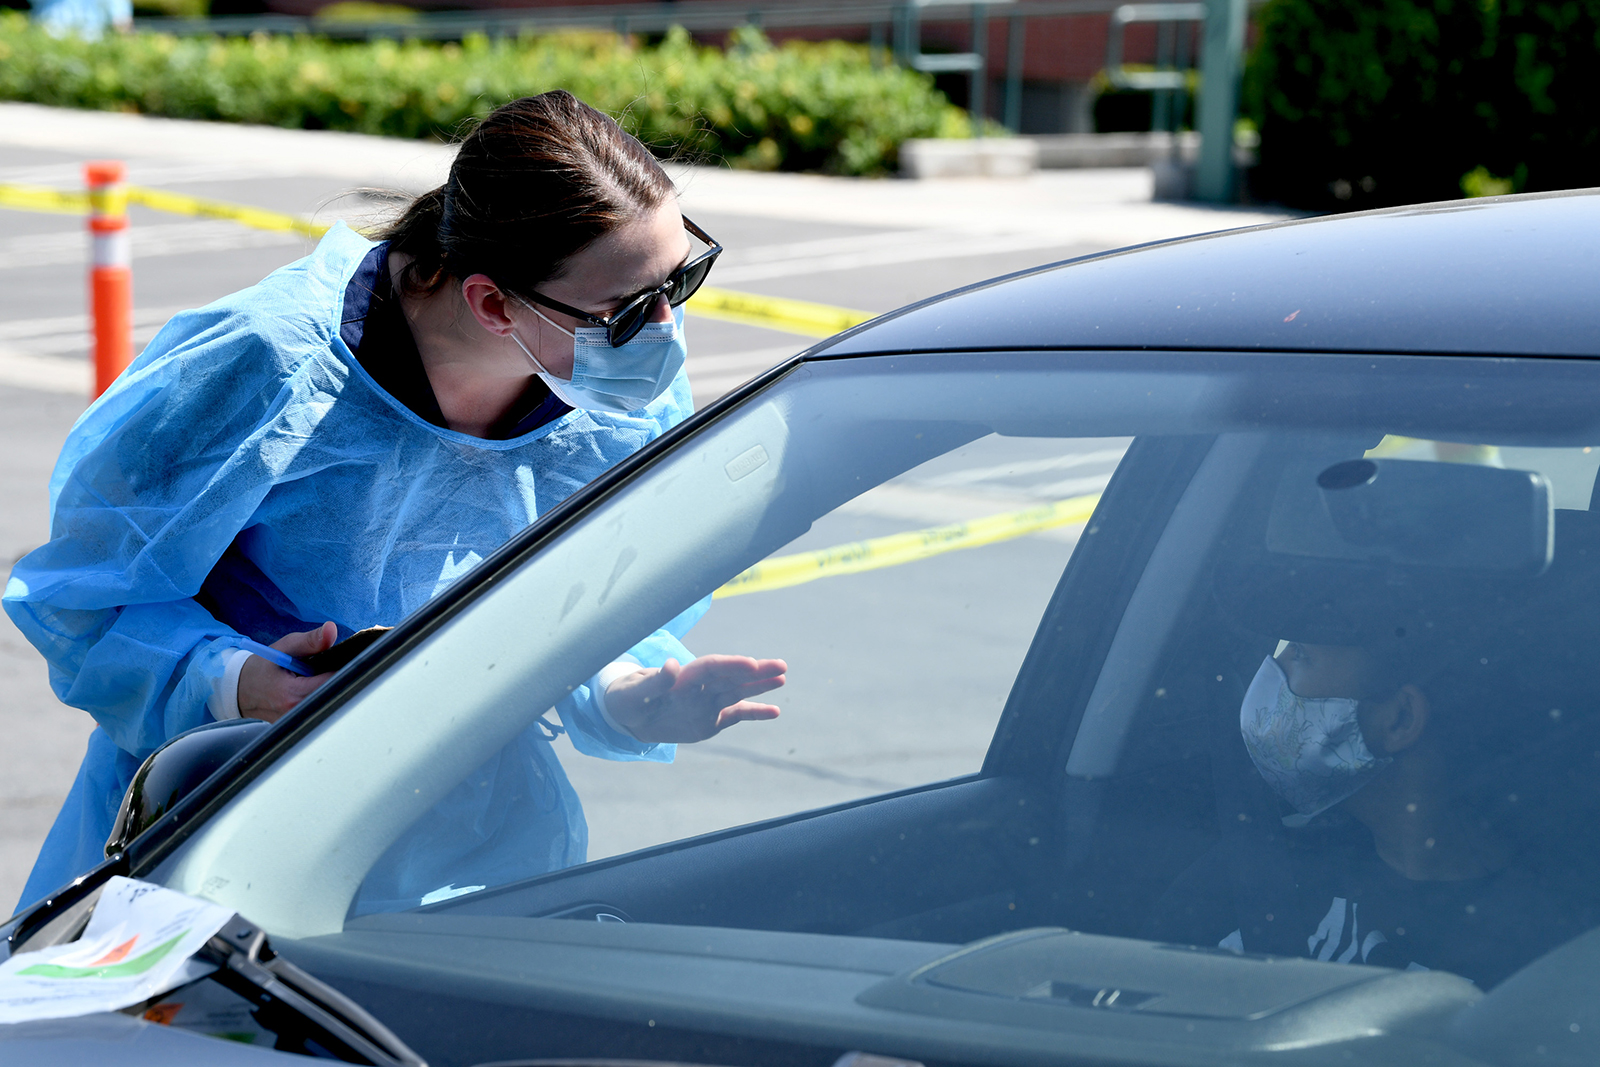 Urgent care workers wearing personal protective equipment perform drive-up Covid-19 testing for students and faculty on the first day of school at Woodbury University in Burbank, California on August 24.